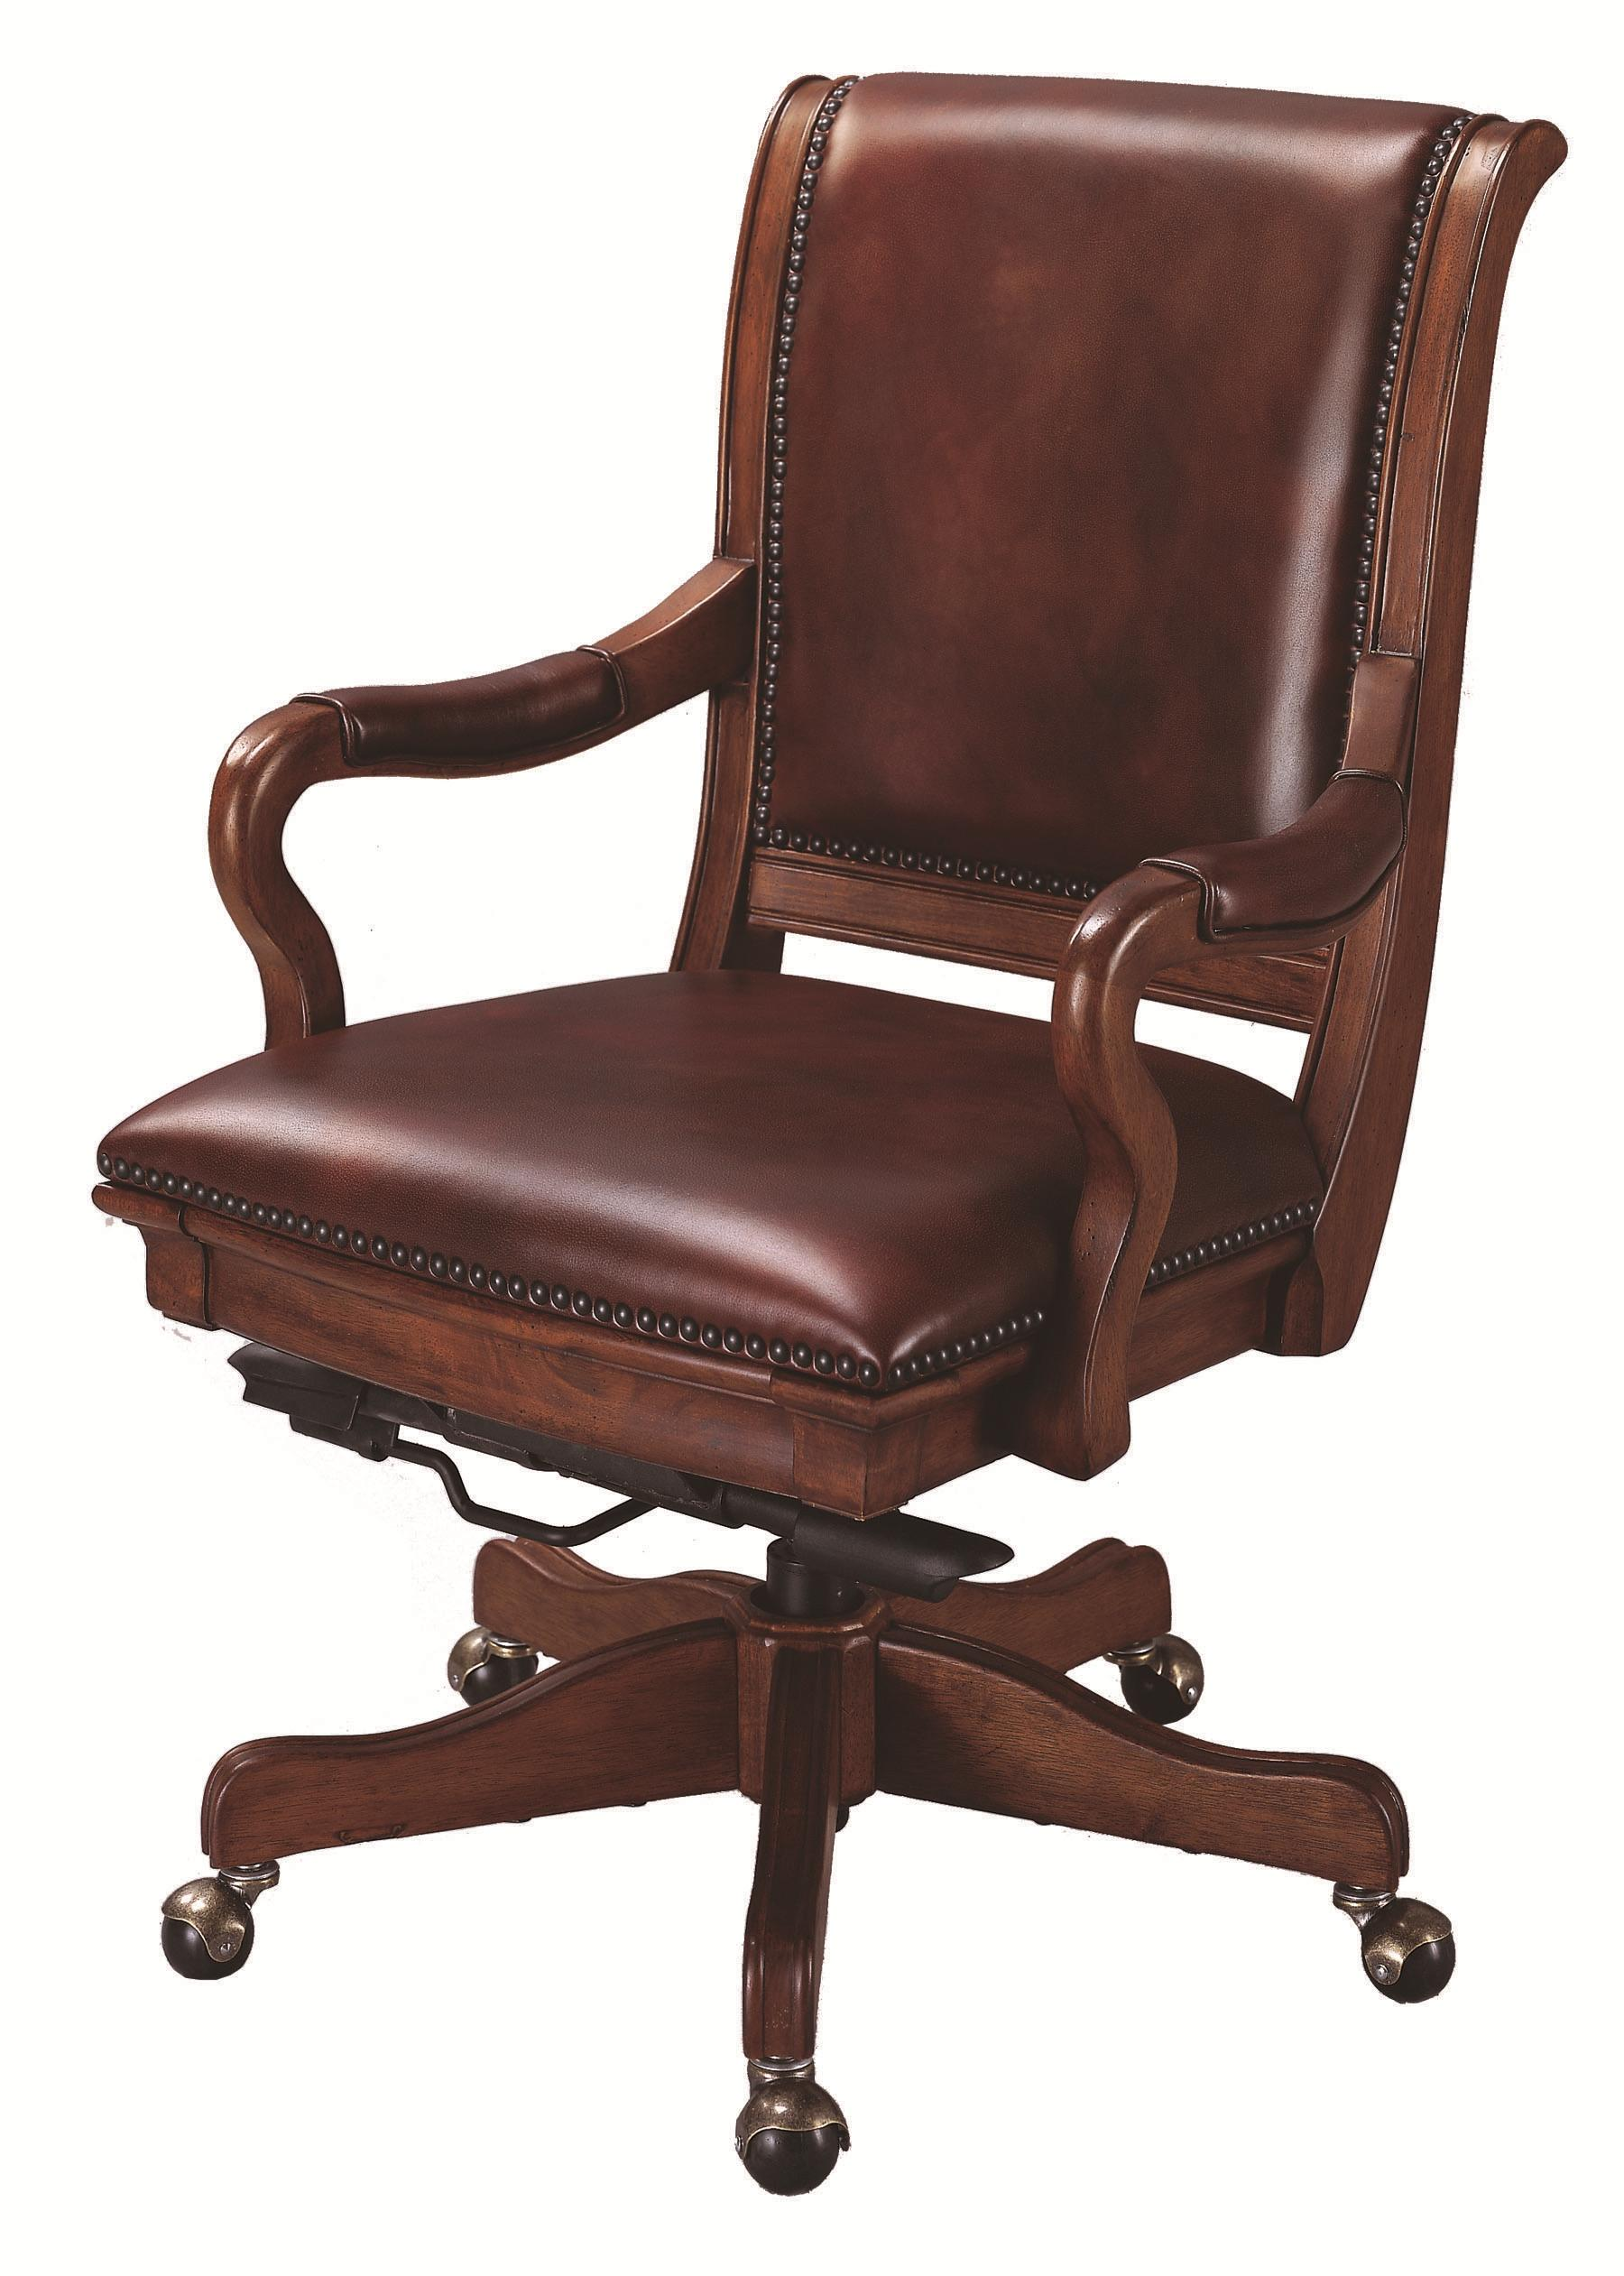 desk chair knees will folding covers fit banquet chairs aspenhome richmond leather upholstered caster office